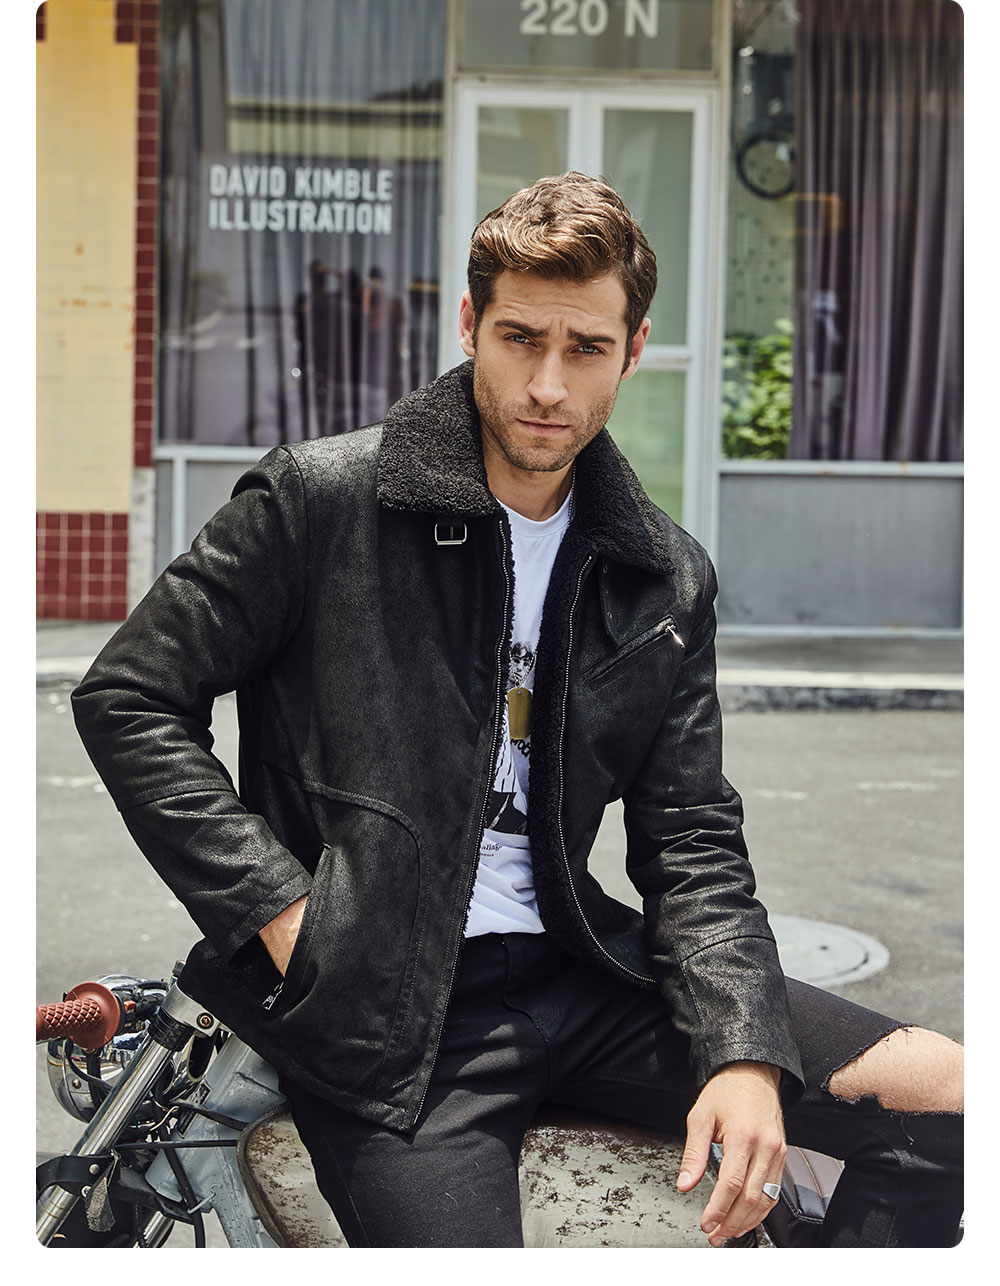 Hc4179bcfbb5642aeb79c215ea2bc79bfH FLAVOR New Men's Genuine Leather Motorcycle Jacket Pigskin with Faux Shearling Real Leather Jacket Bomber Coat Men